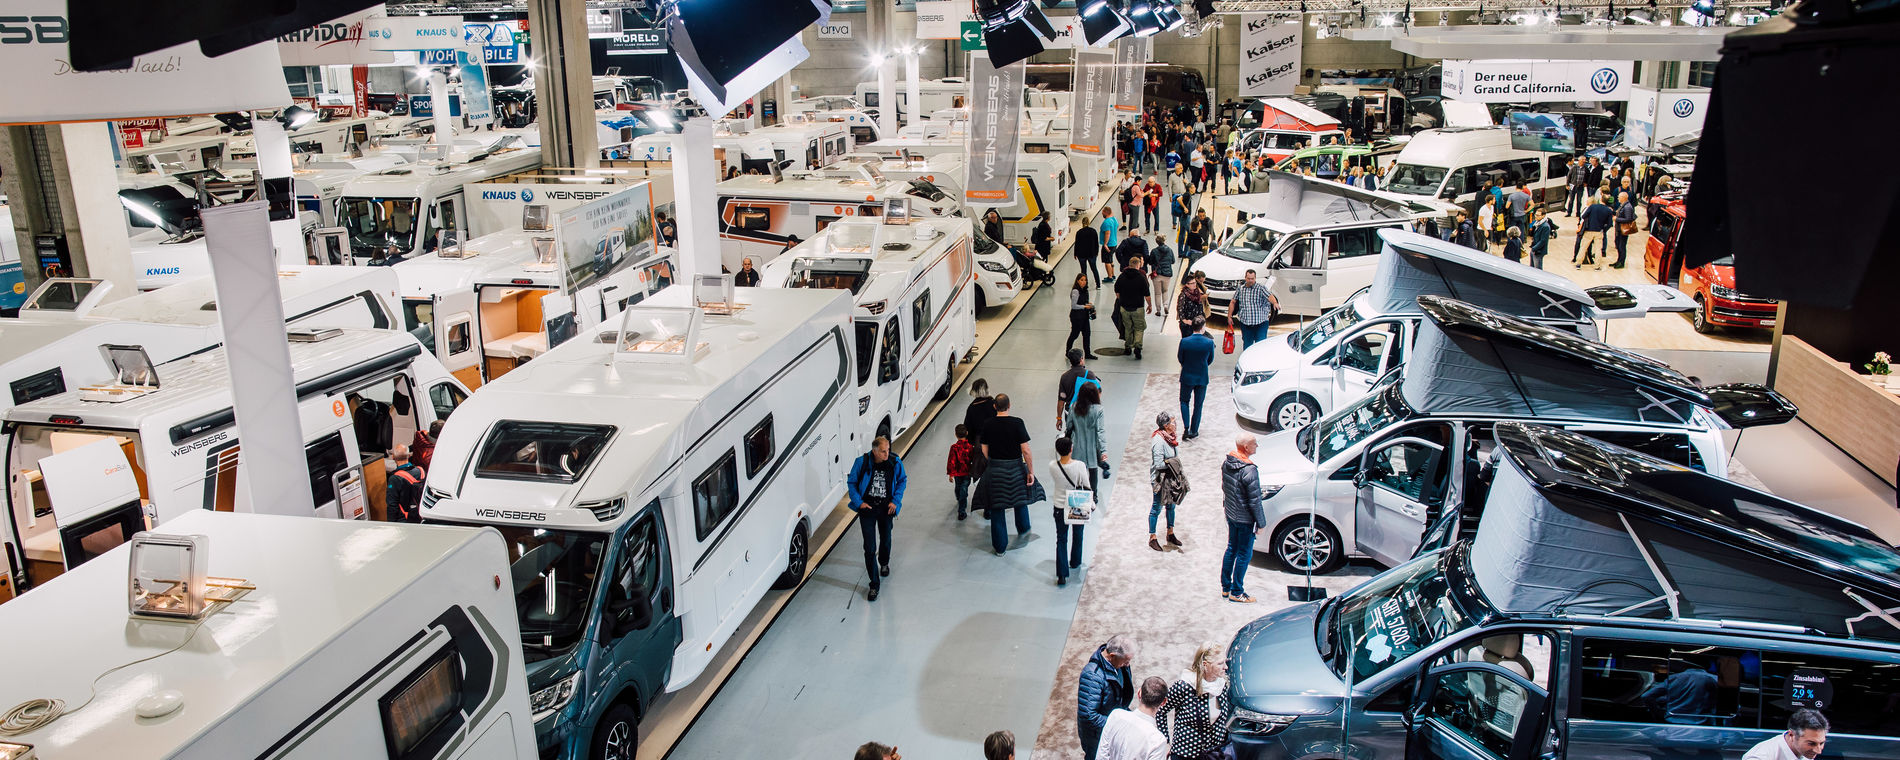 Suisse Caravan Salon 2019 in Bern